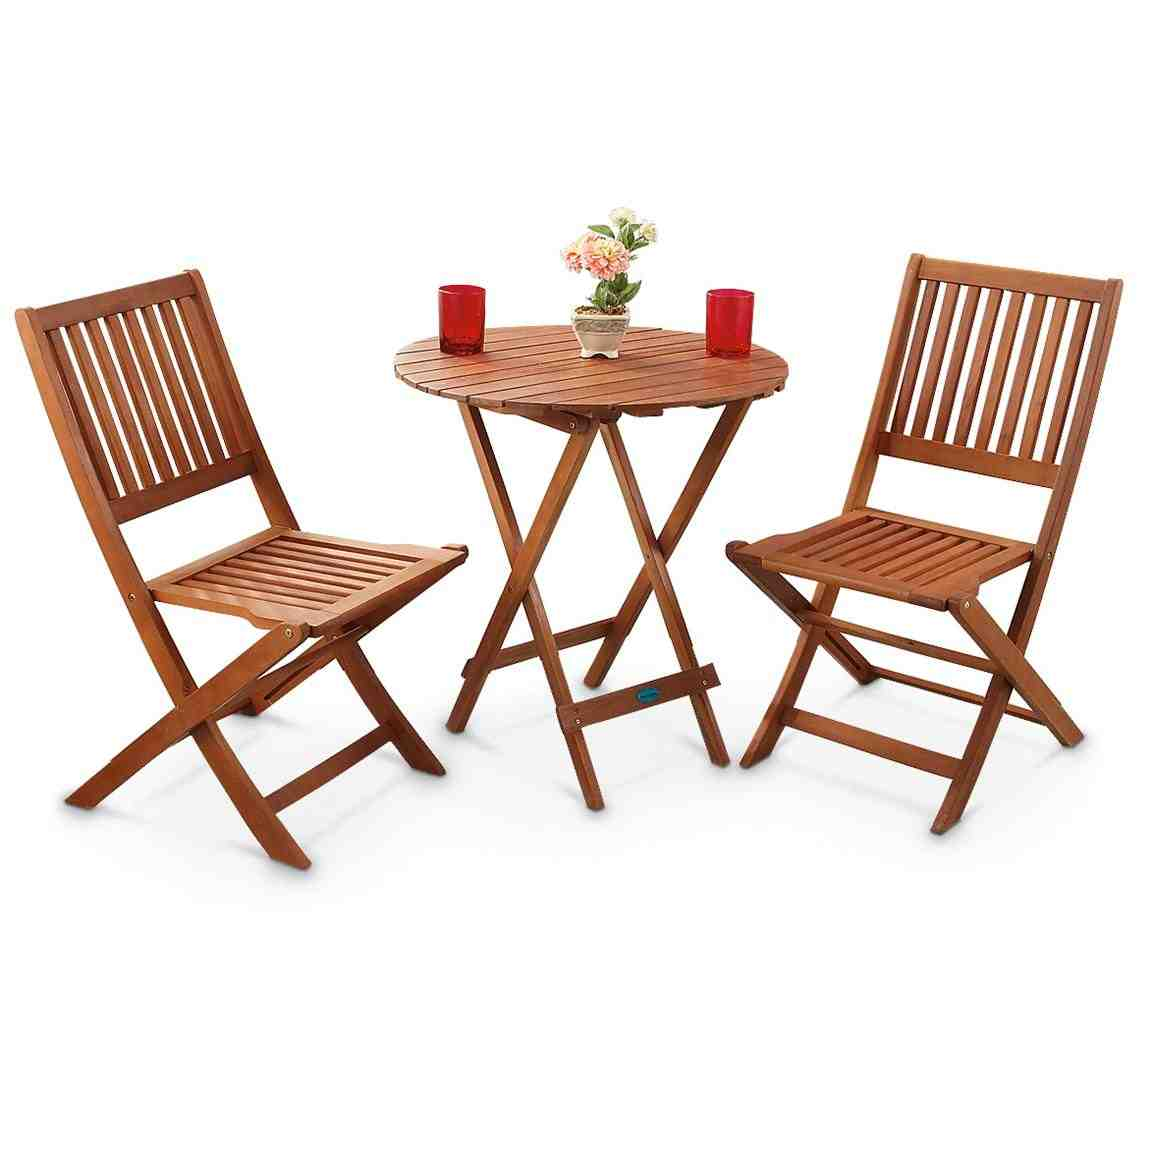 Outdoor furniture table and chairs patio patio tables for Outdoor patio table and chairs